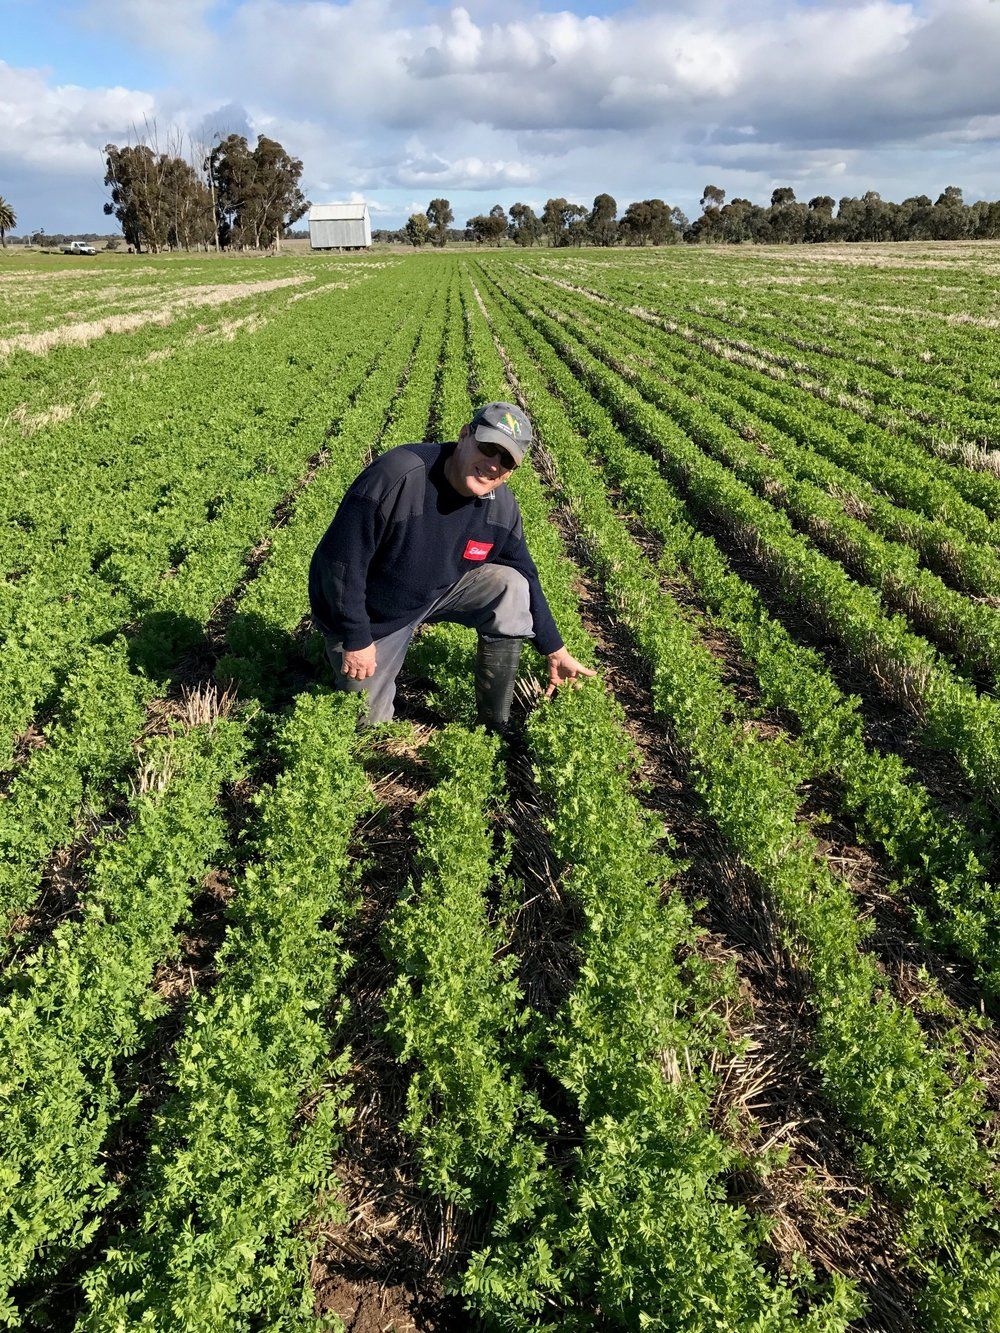 Progressive Wimmera Grower uses CommStream to invest in storage... - In 2017, an innovative cereal and pulse crop grower located in the Wimmera, VIC secured CommStream funding to invest in on-farm storage.By increasing on-farm storage, the grower has become less reliant on local commodity handlers, increased harvest logistics efficiency and enhanced commodity marketing options.In exchange for upfront funding, CommStream is taking physical delivery of Wheat over a 7 year term.